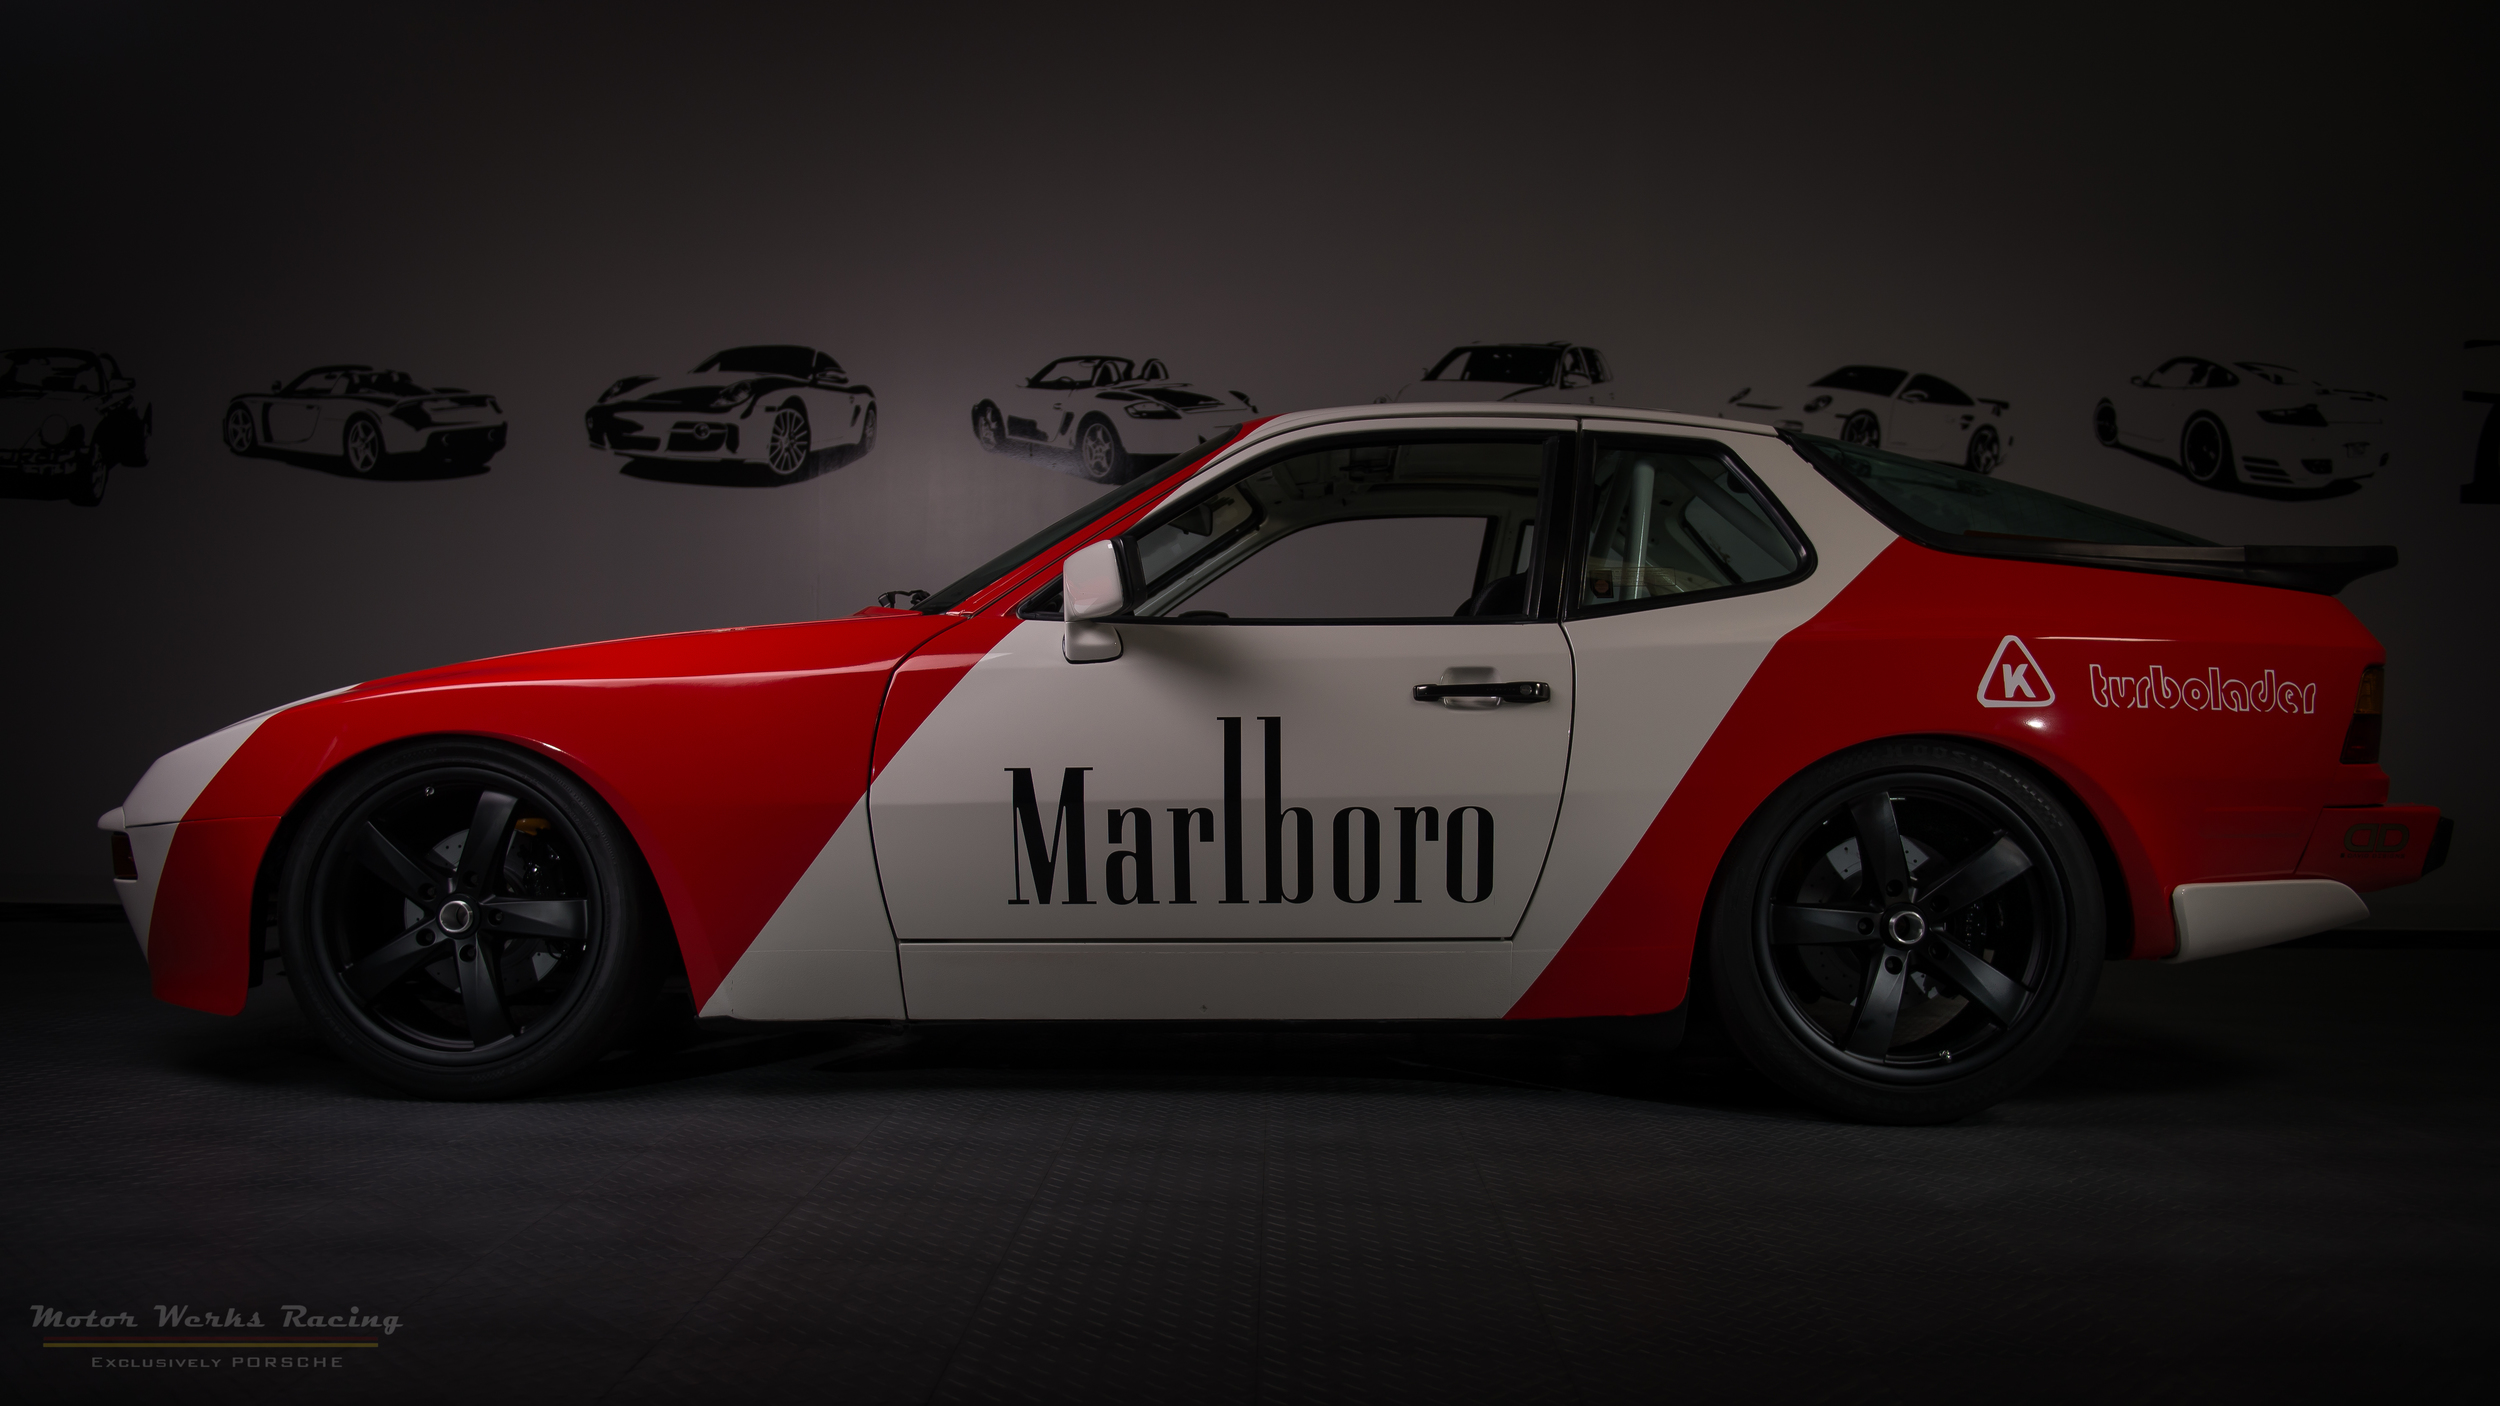 1986 944T Marlboro Tribute Car 6.jpg